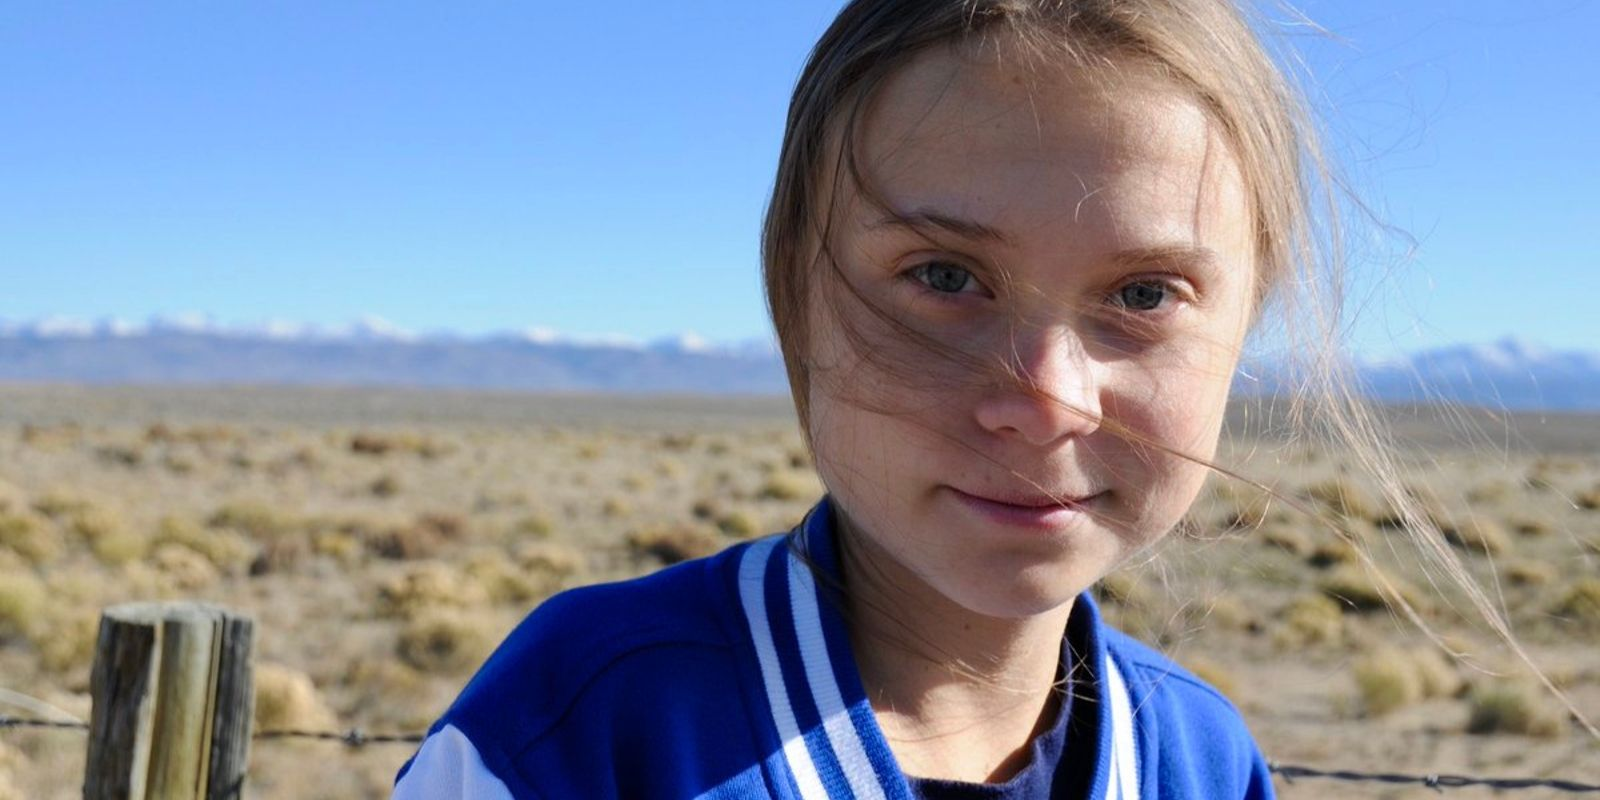 Alberta government has no plans to see Greta Thunberg during her visit